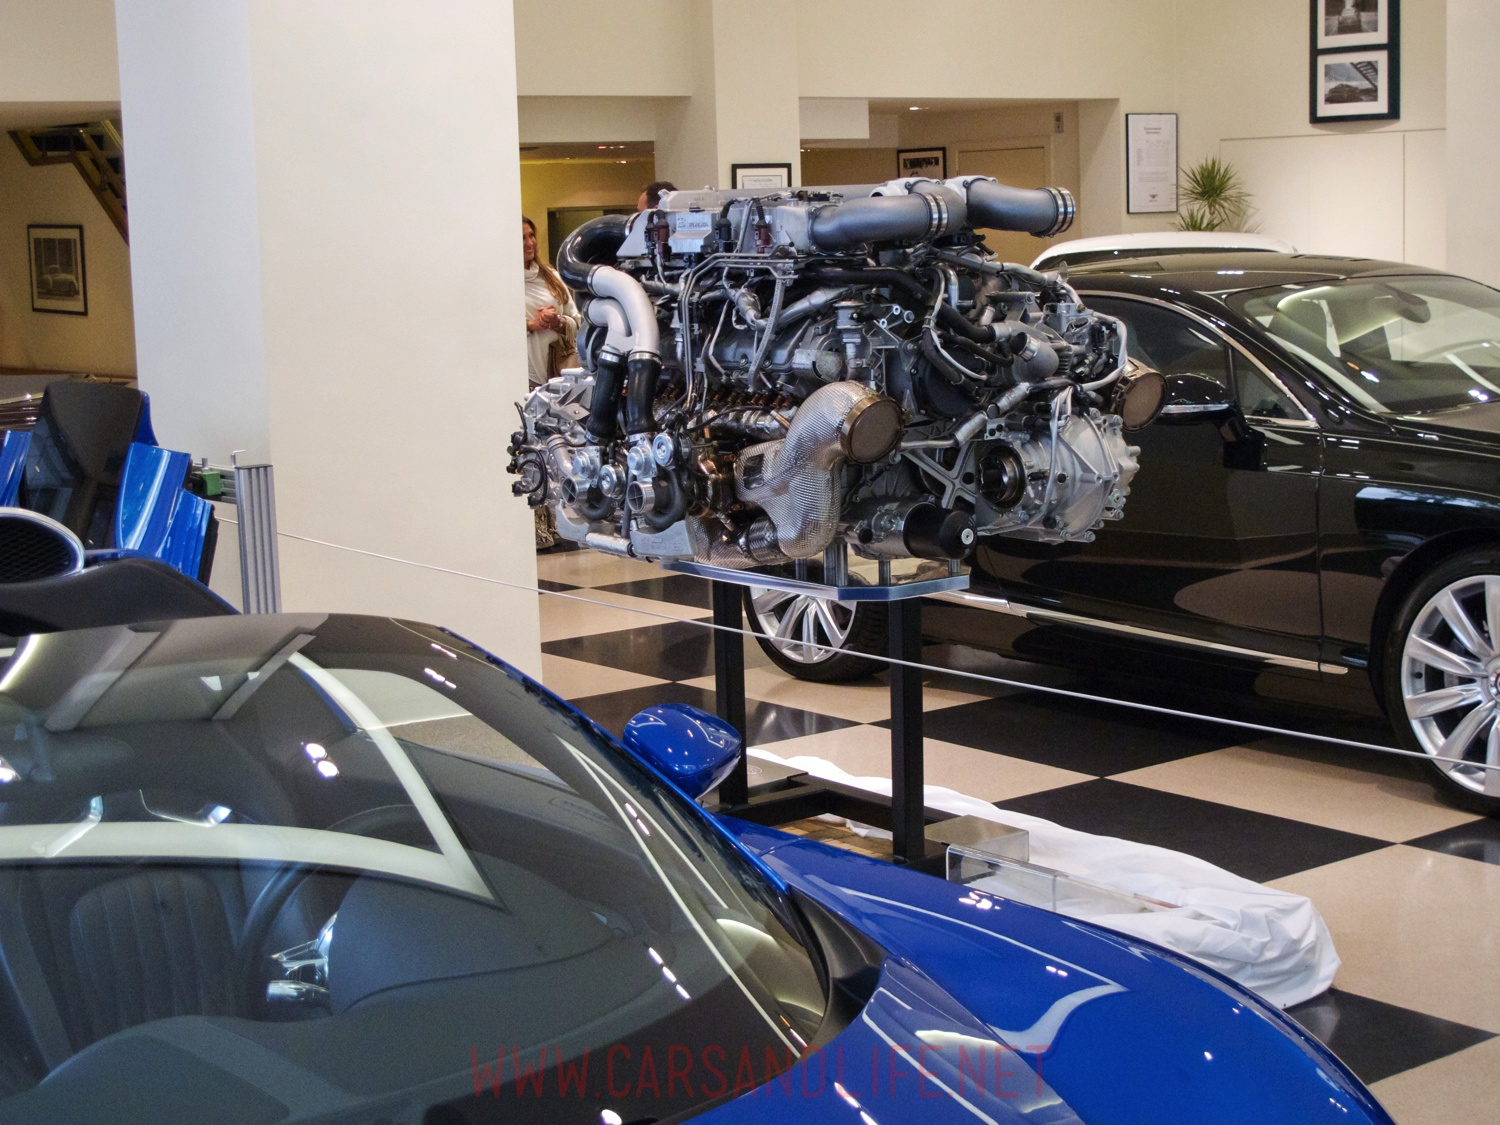 bugatti veyron w16 engine and gearbox at hr owen london. Cars Review. Best American Auto & Cars Review